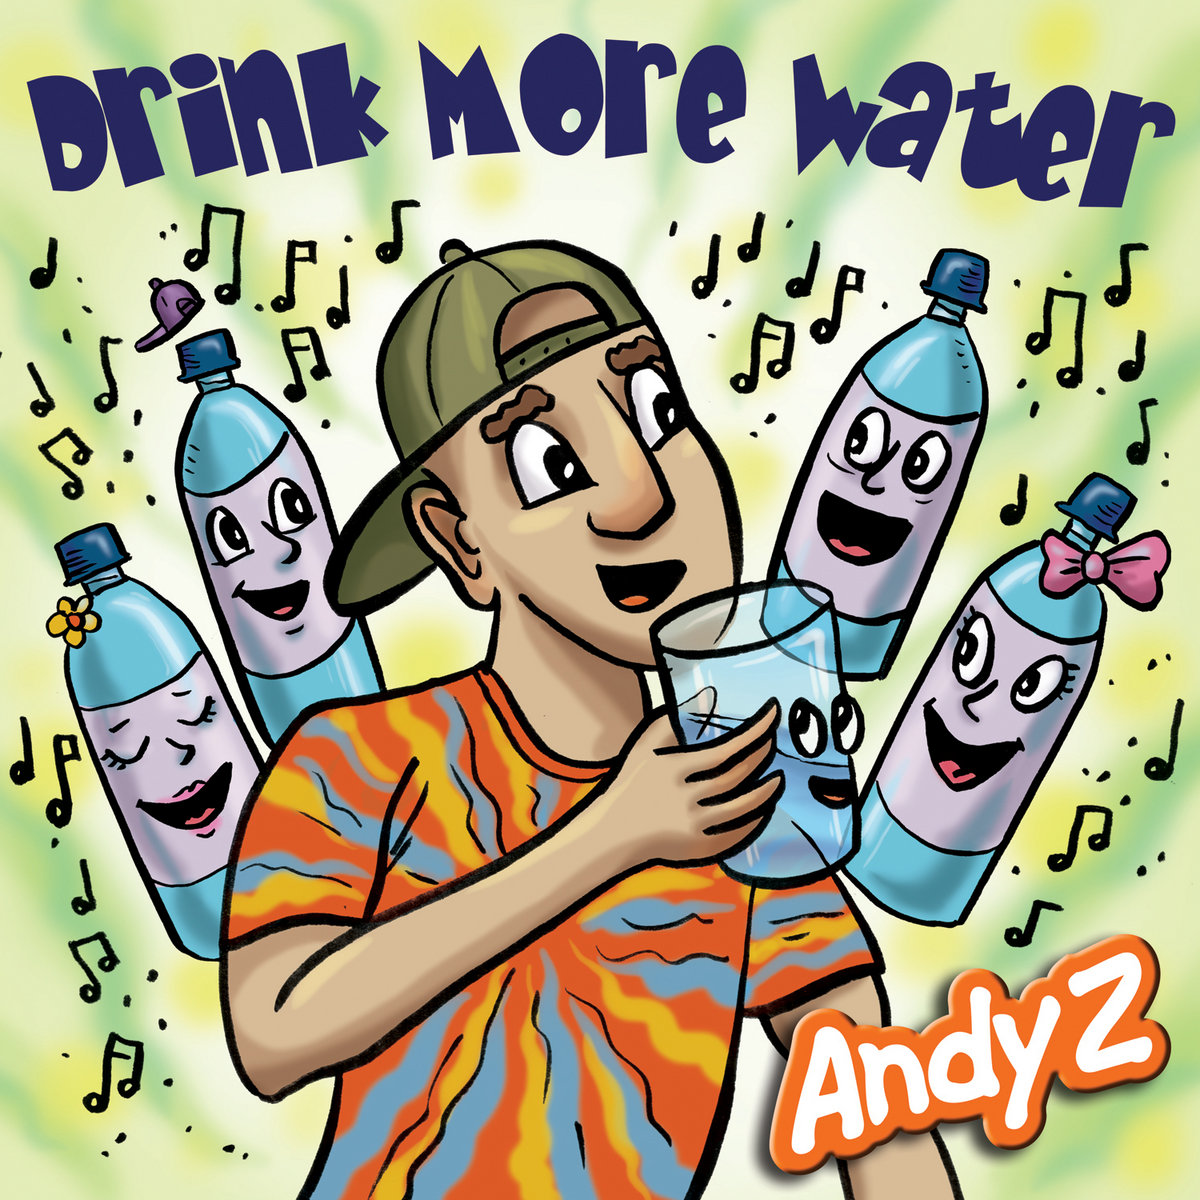 Drink More Water (single) by Andy Z